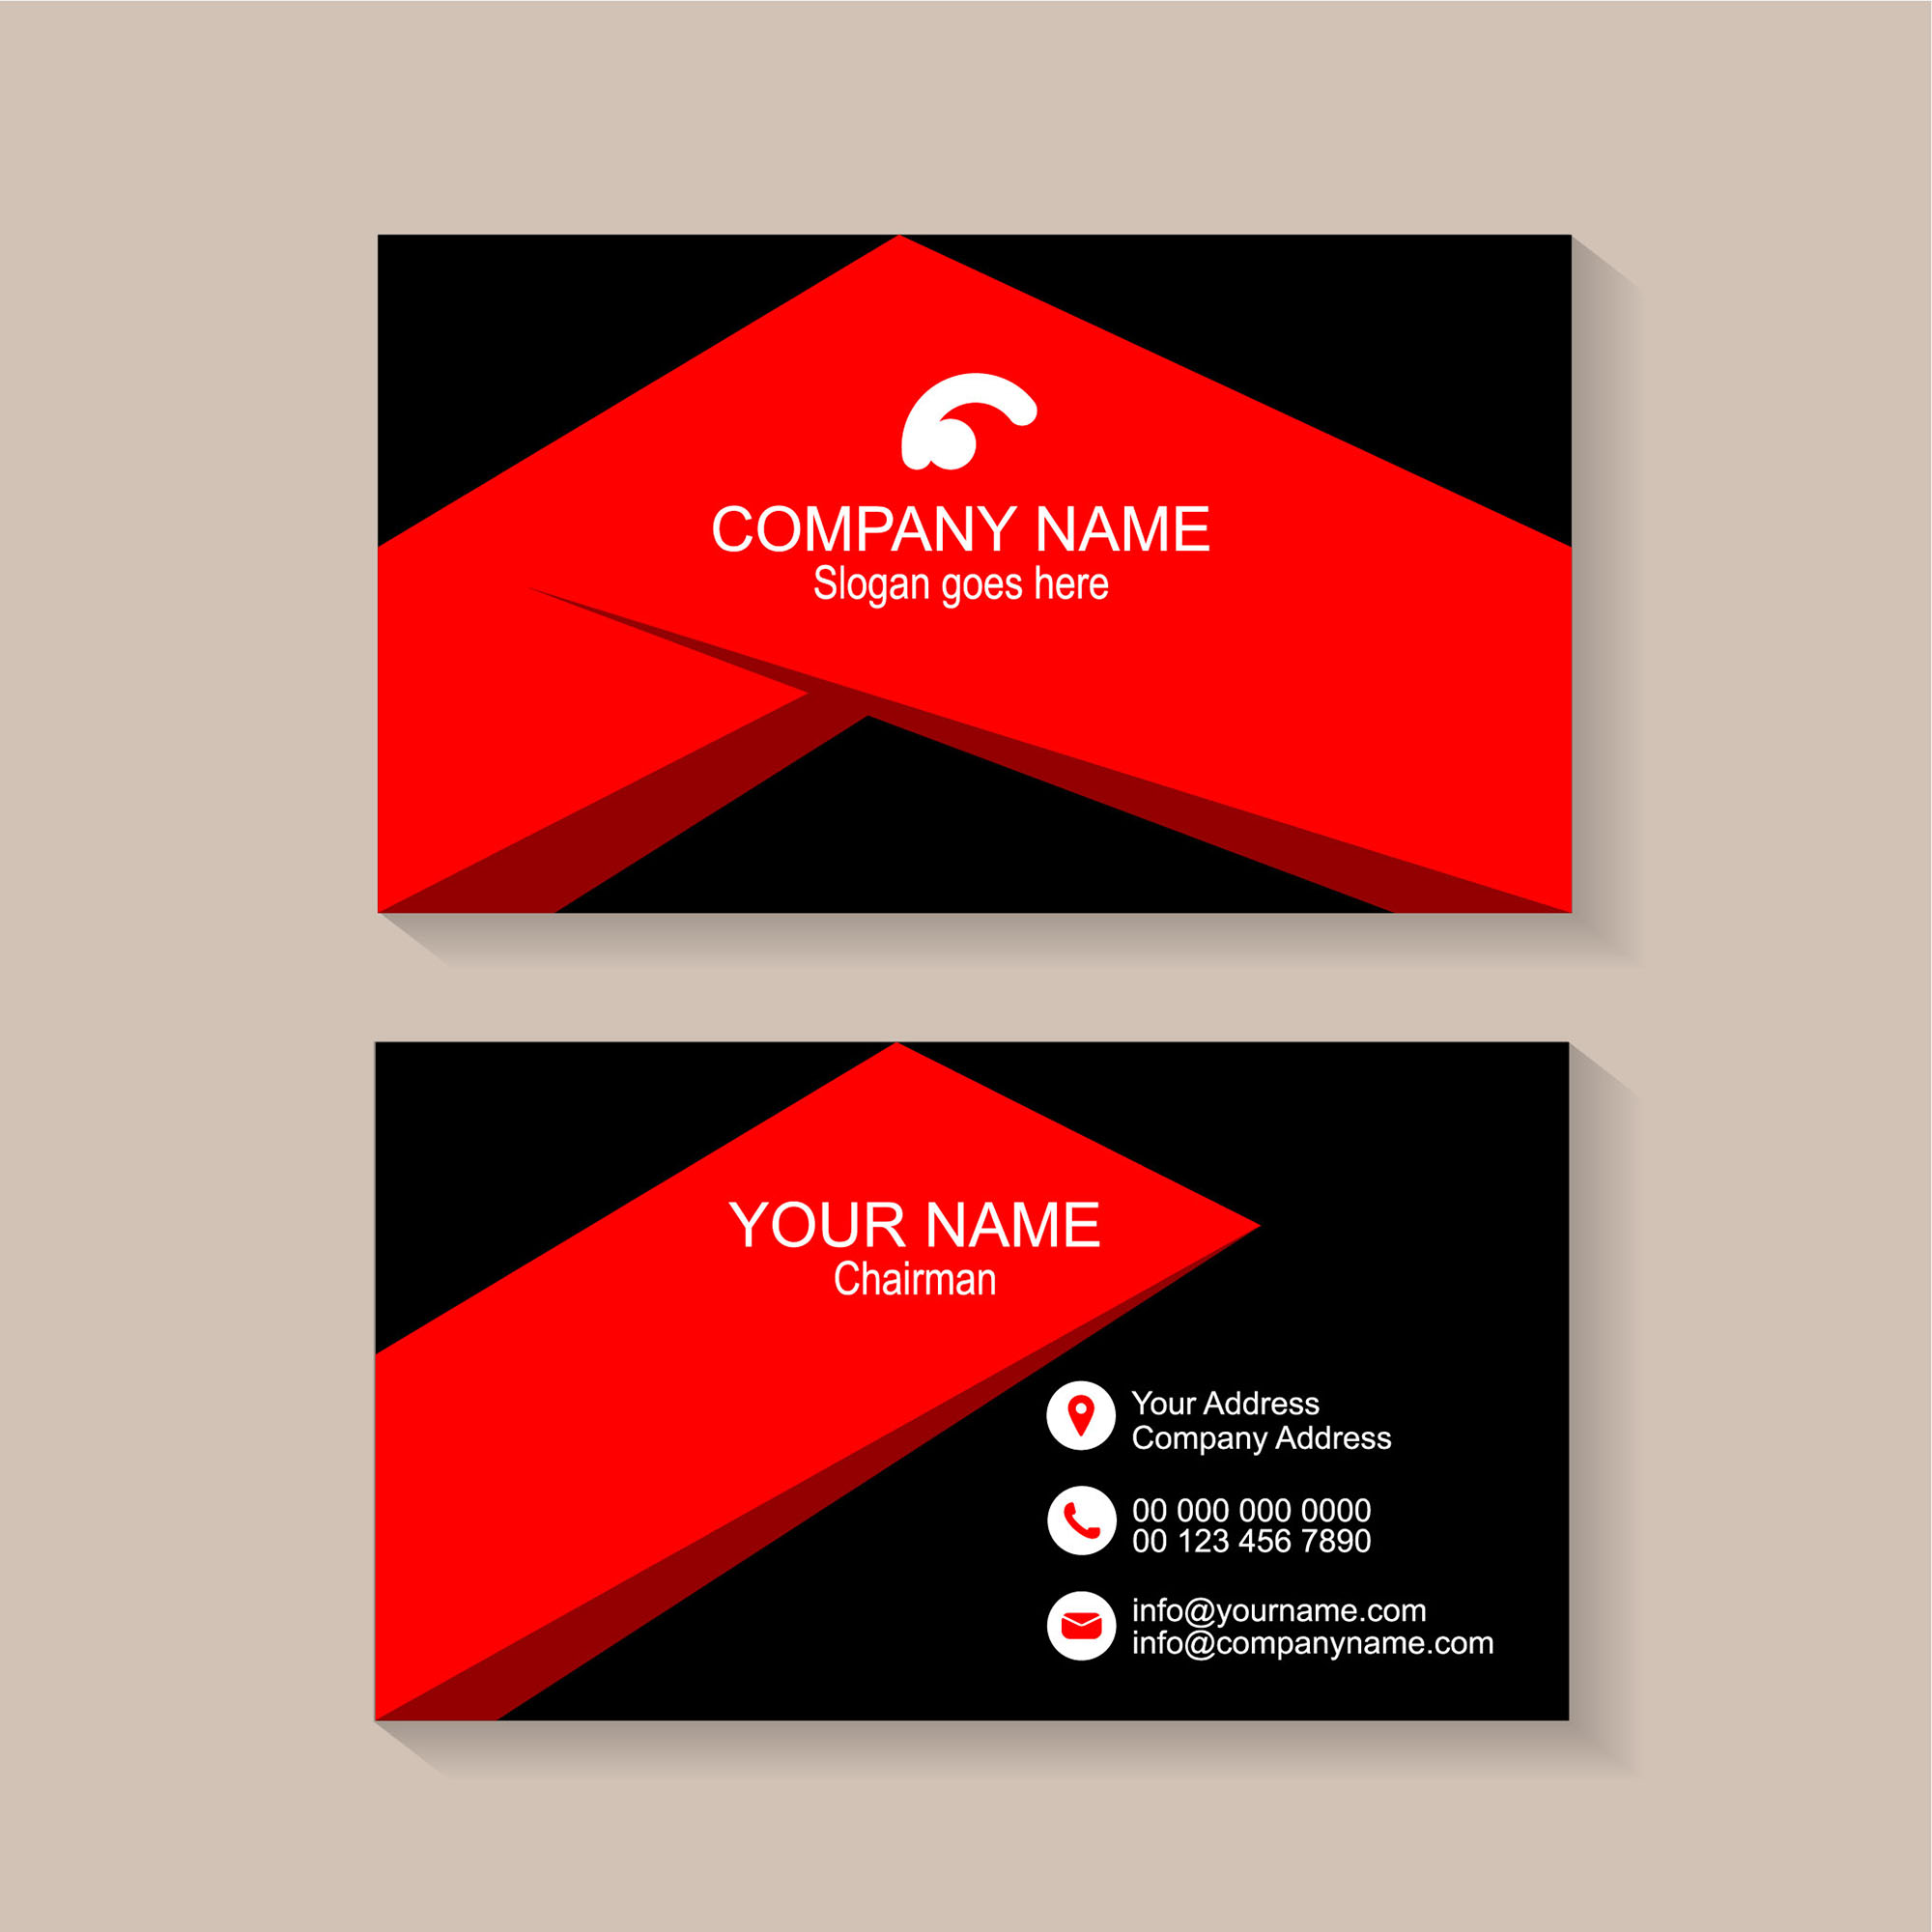 Business card template design free download wisxi business card business cards business card design business card template design templates flashek Gallery